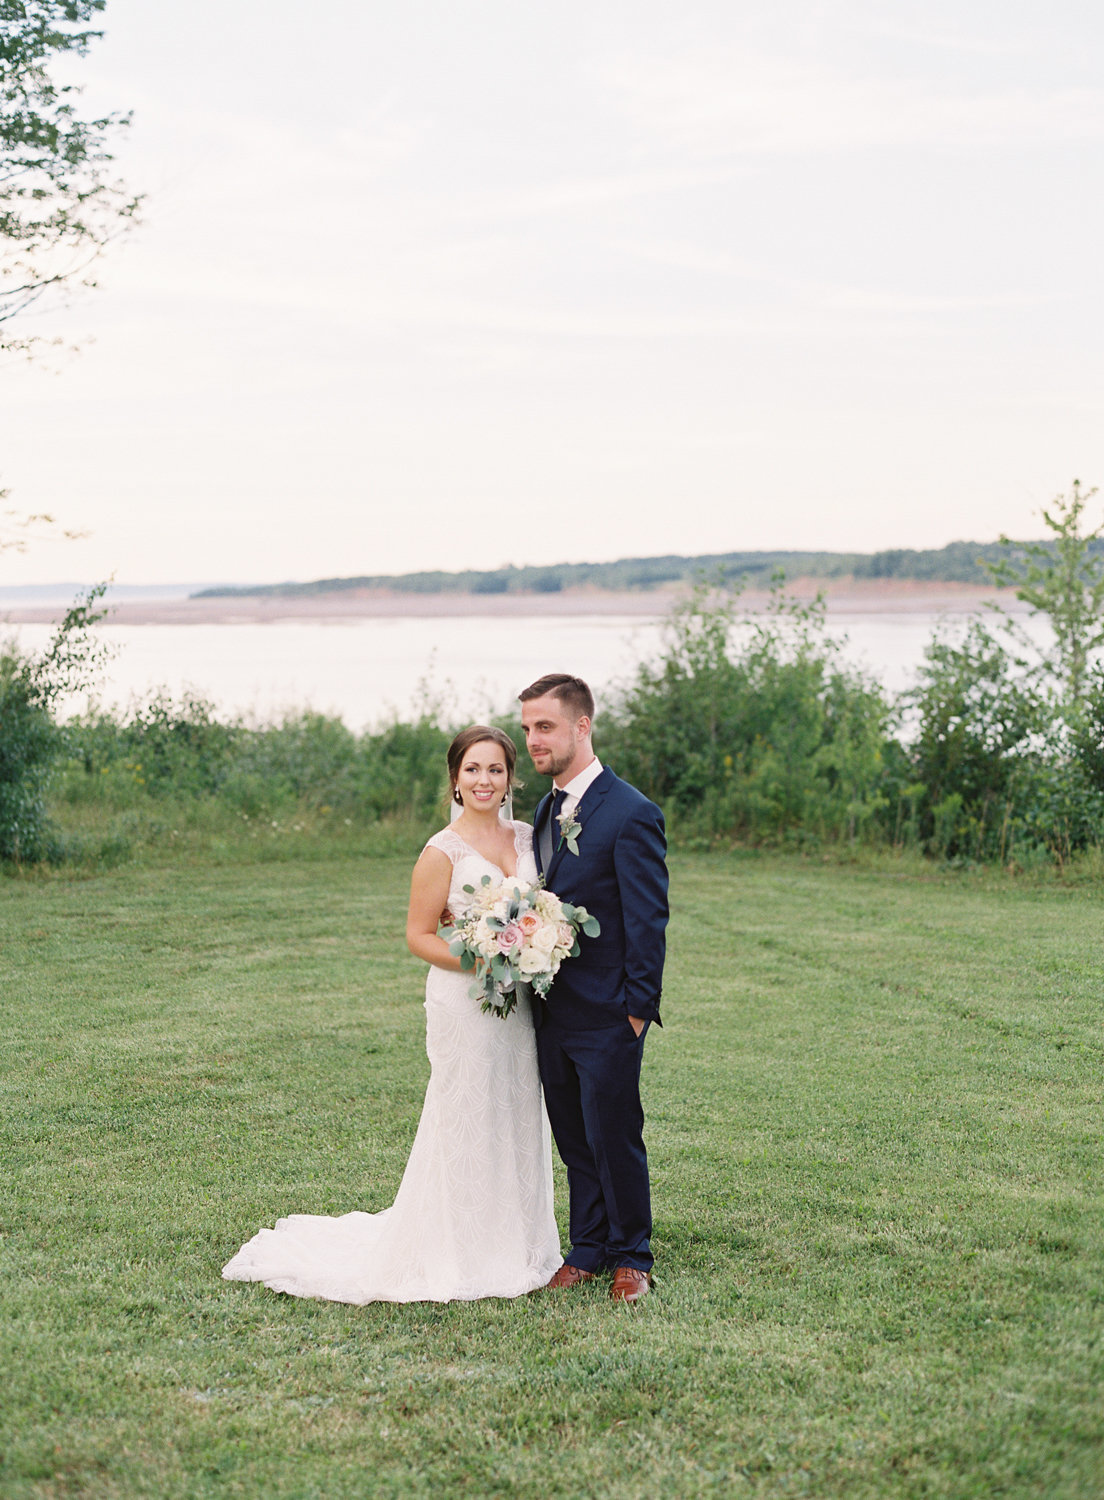 Jacqueline Anne Photography - Nova Scotia Backyard Wedding-83